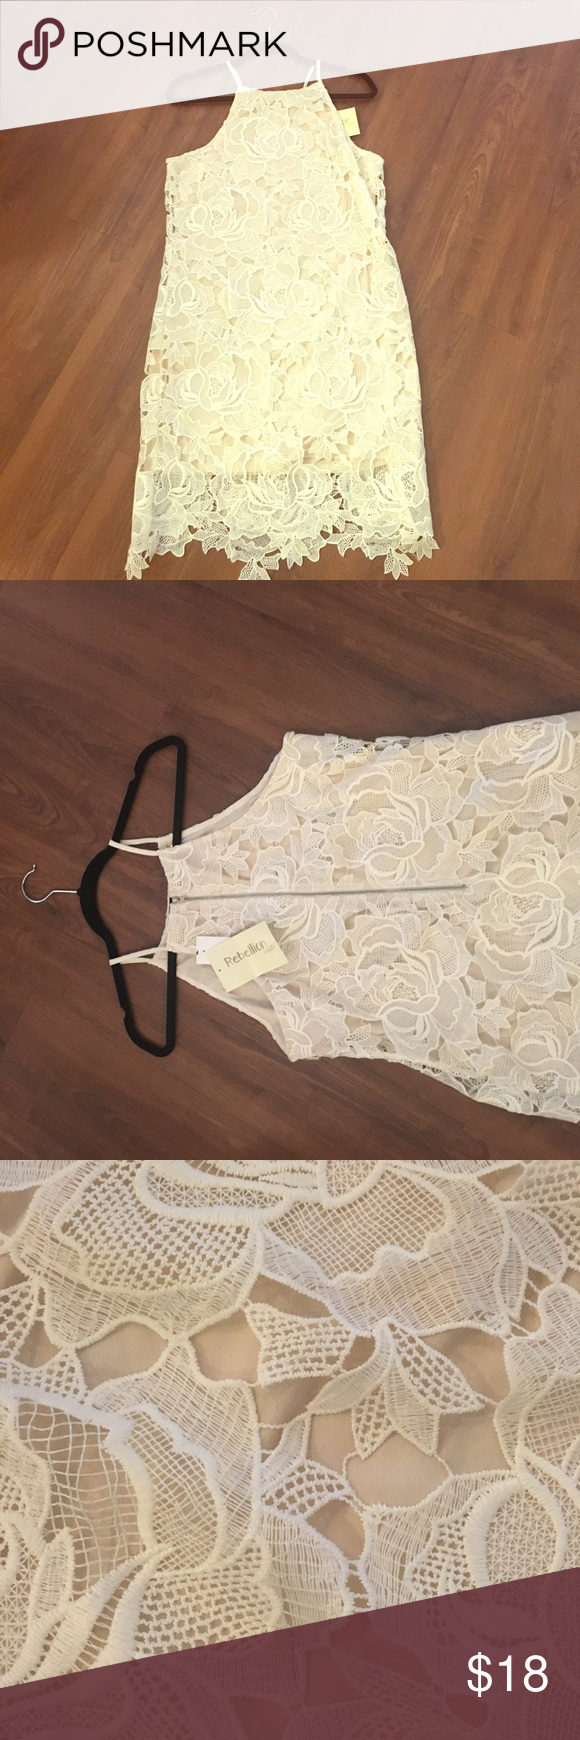 Beautiful lace overlay dress, L This dress is so perfect for spring and summer! Nude lining with an ivory lace overlay. Halter neck and zipper back. Would fit size 4-6. Brand new, with tags. Dresses Mini